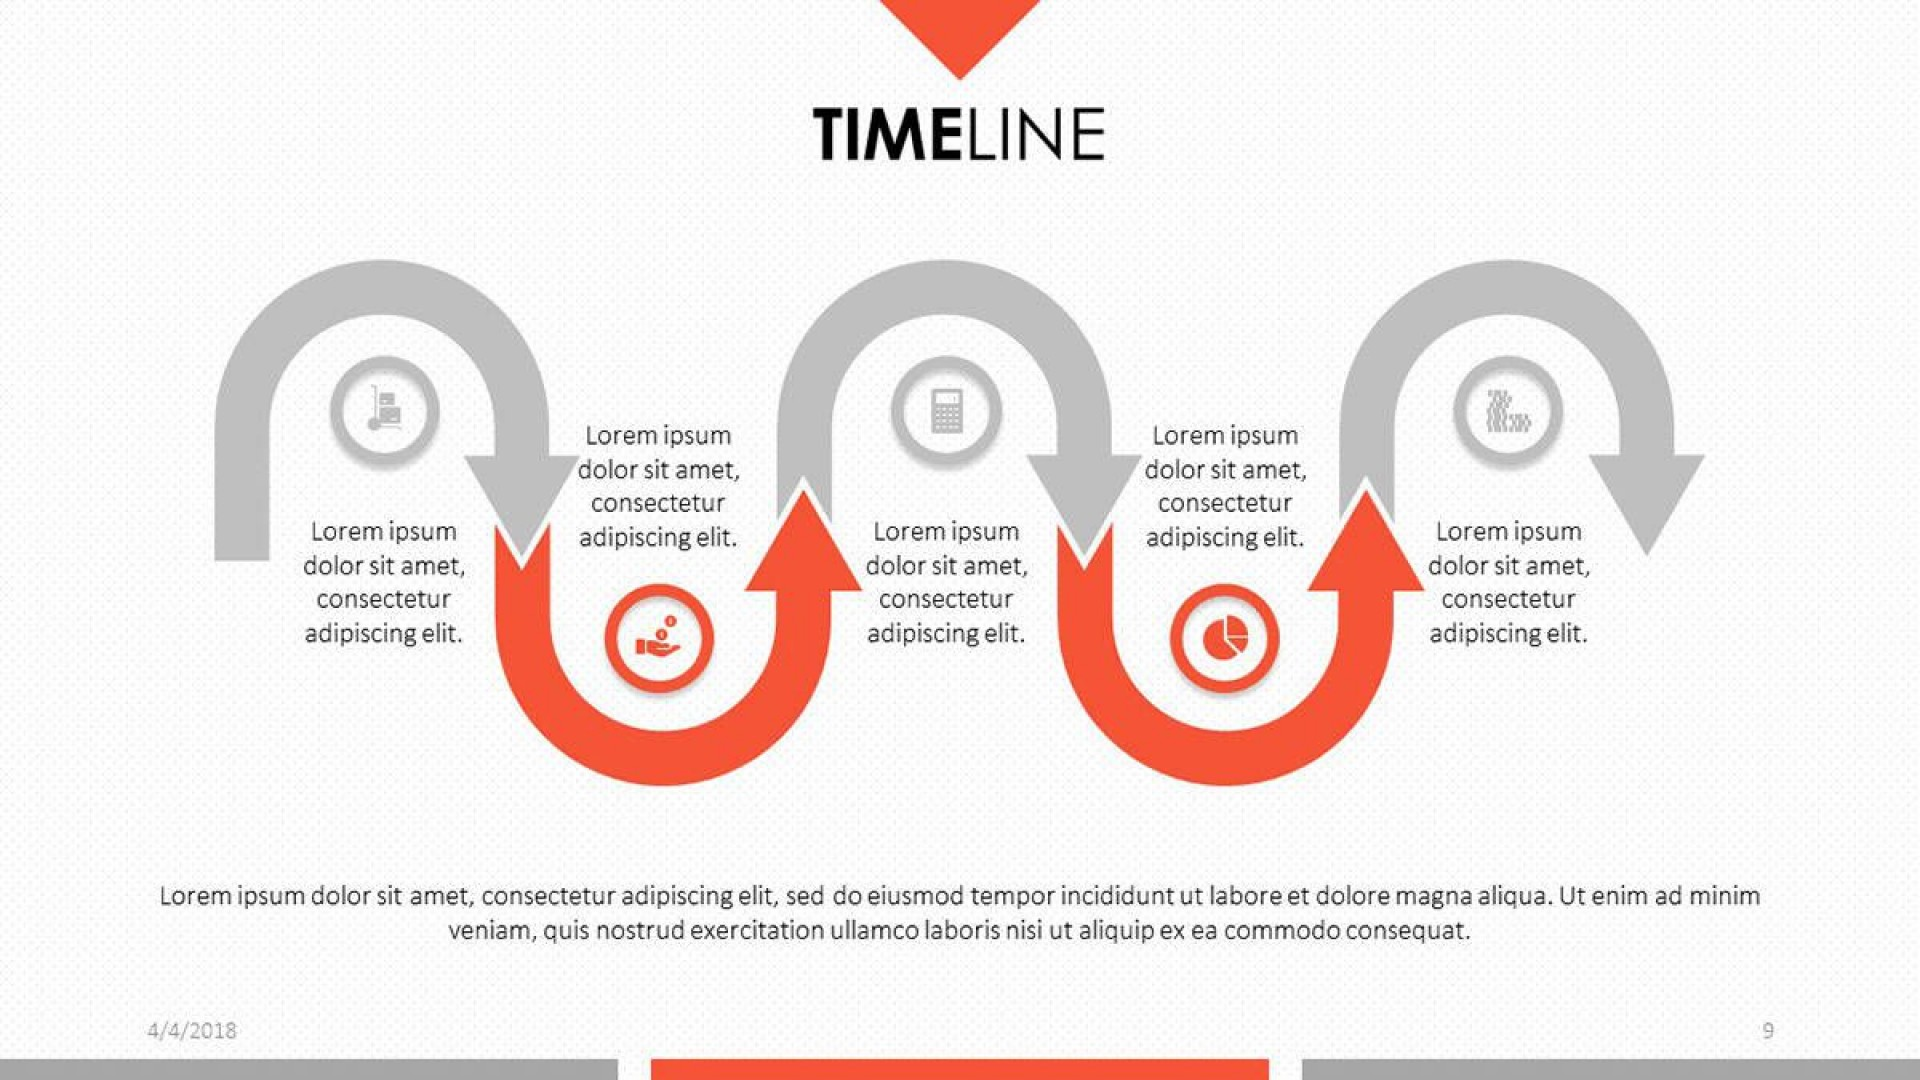 004 Excellent Timeline Template Presentationgo Highest Quality 1920